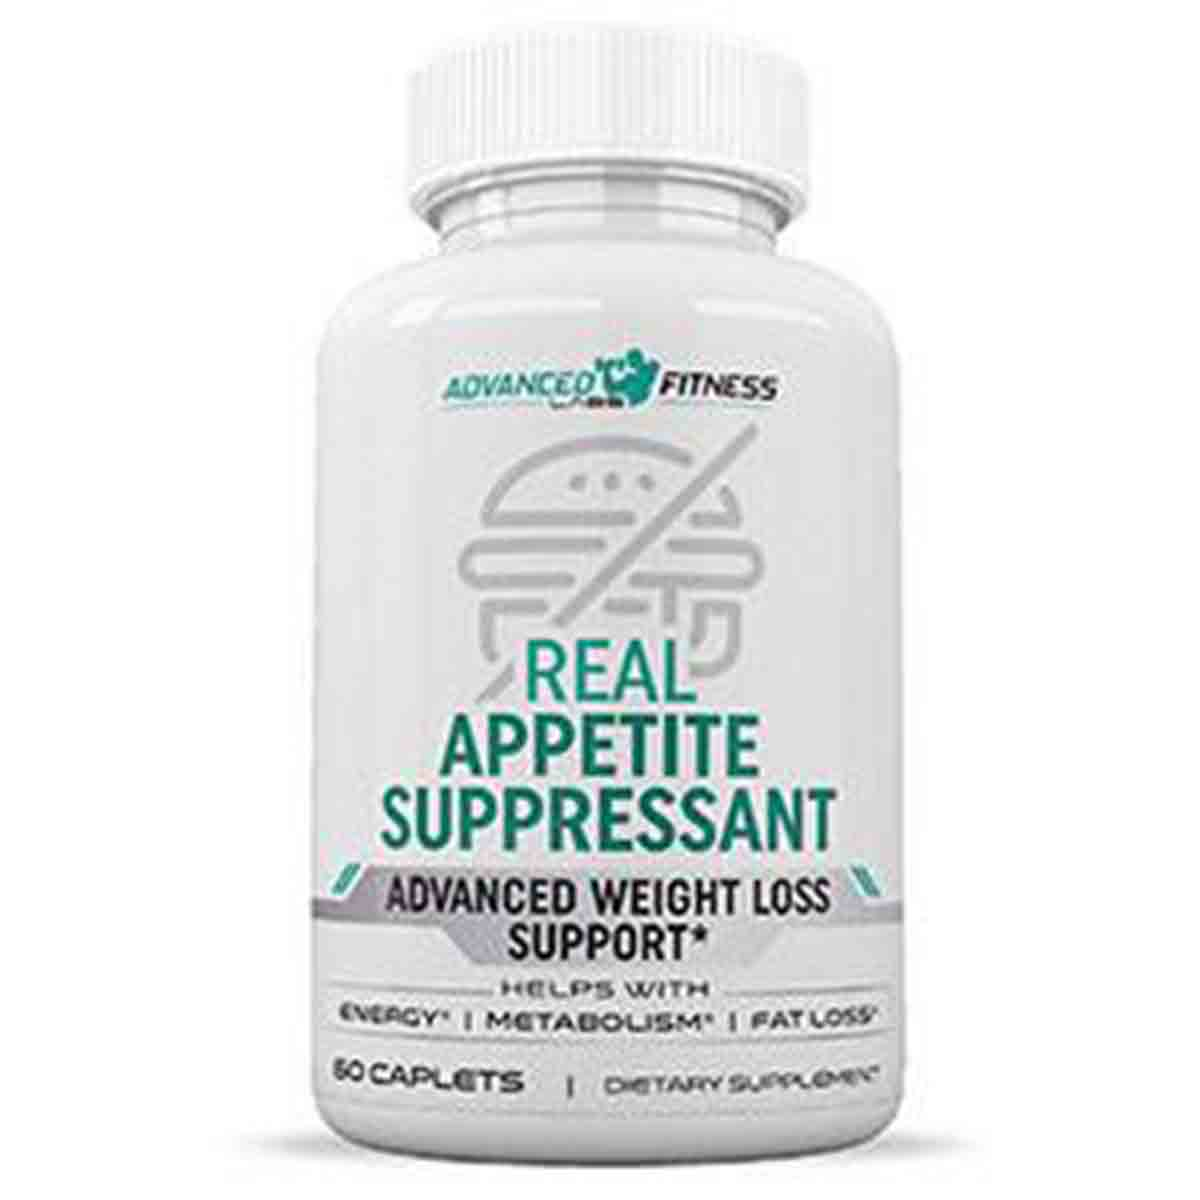 Advanced Fitness Labs Appetite Suppressant